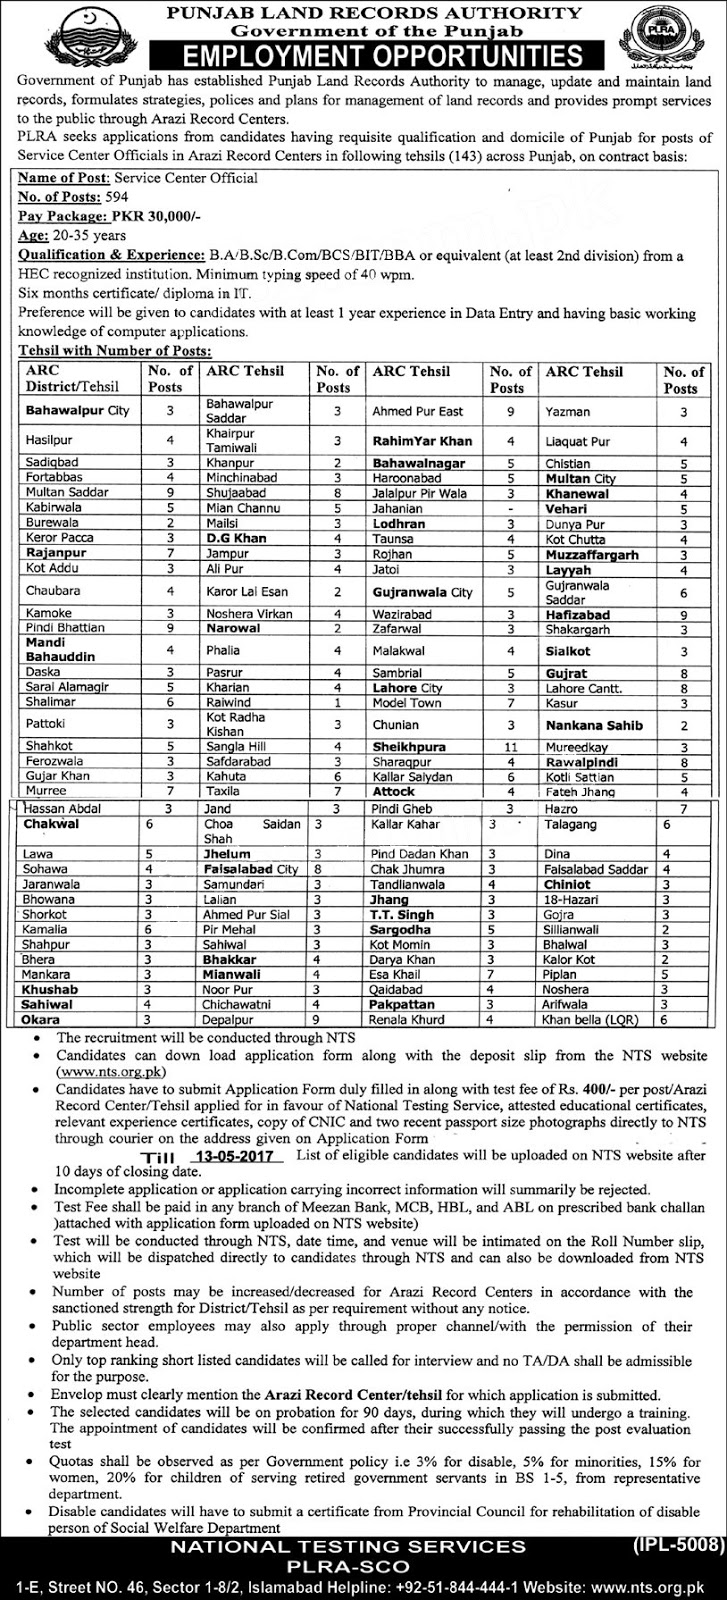 LRMS Jobs in Punjab Land Records Authority